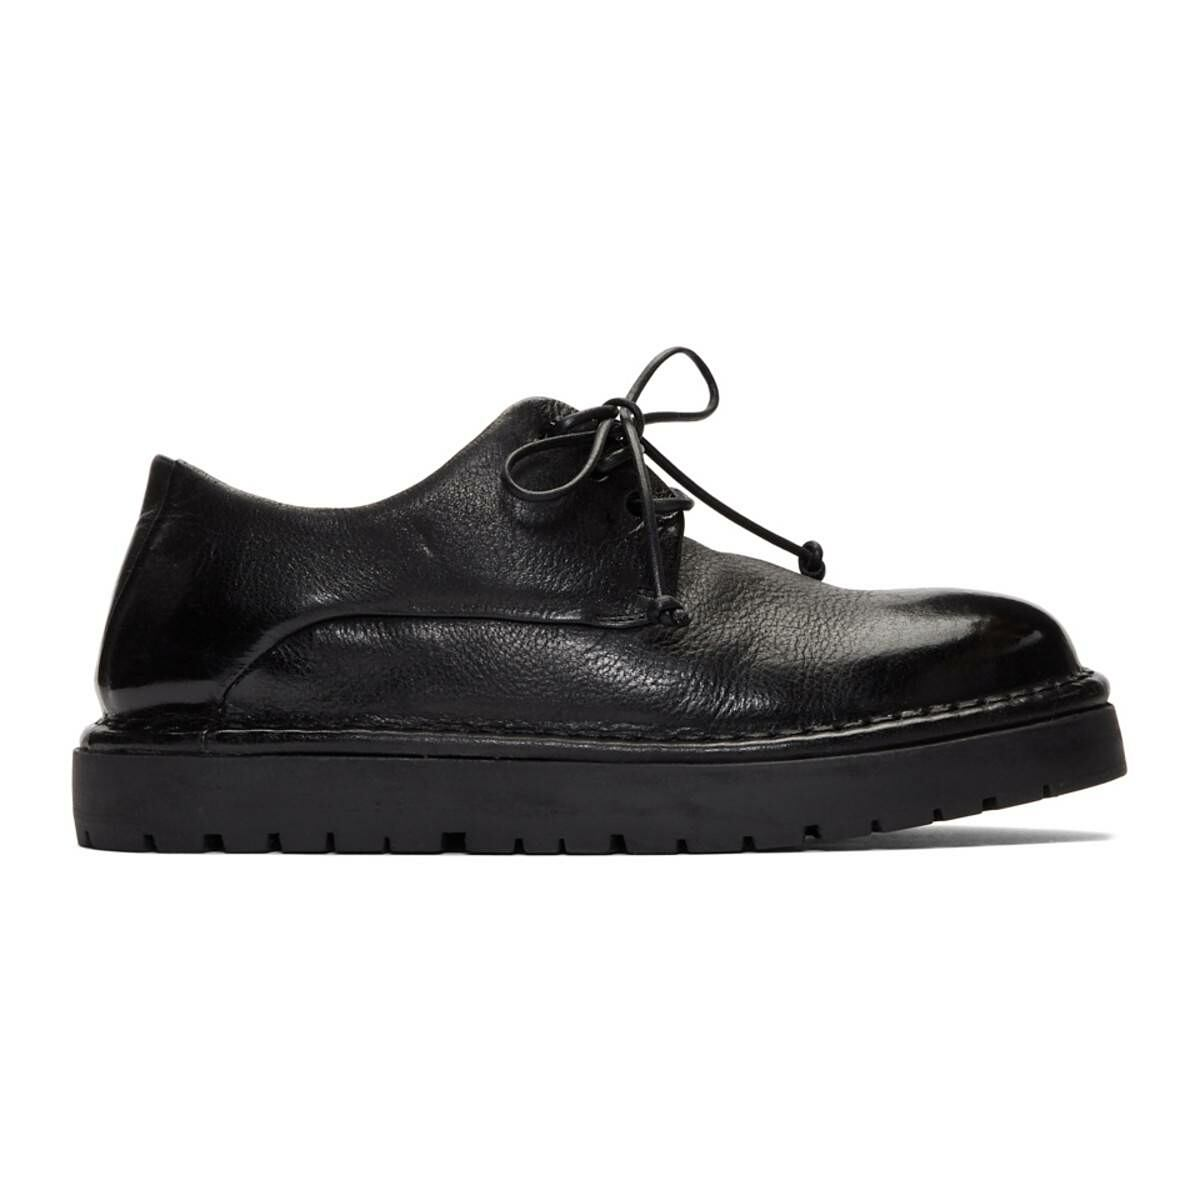 Marsell Black Gomme Pallottola Derby Oxfords Ssense USA WOMEN Women SHOES Womens LEATHER SHOES